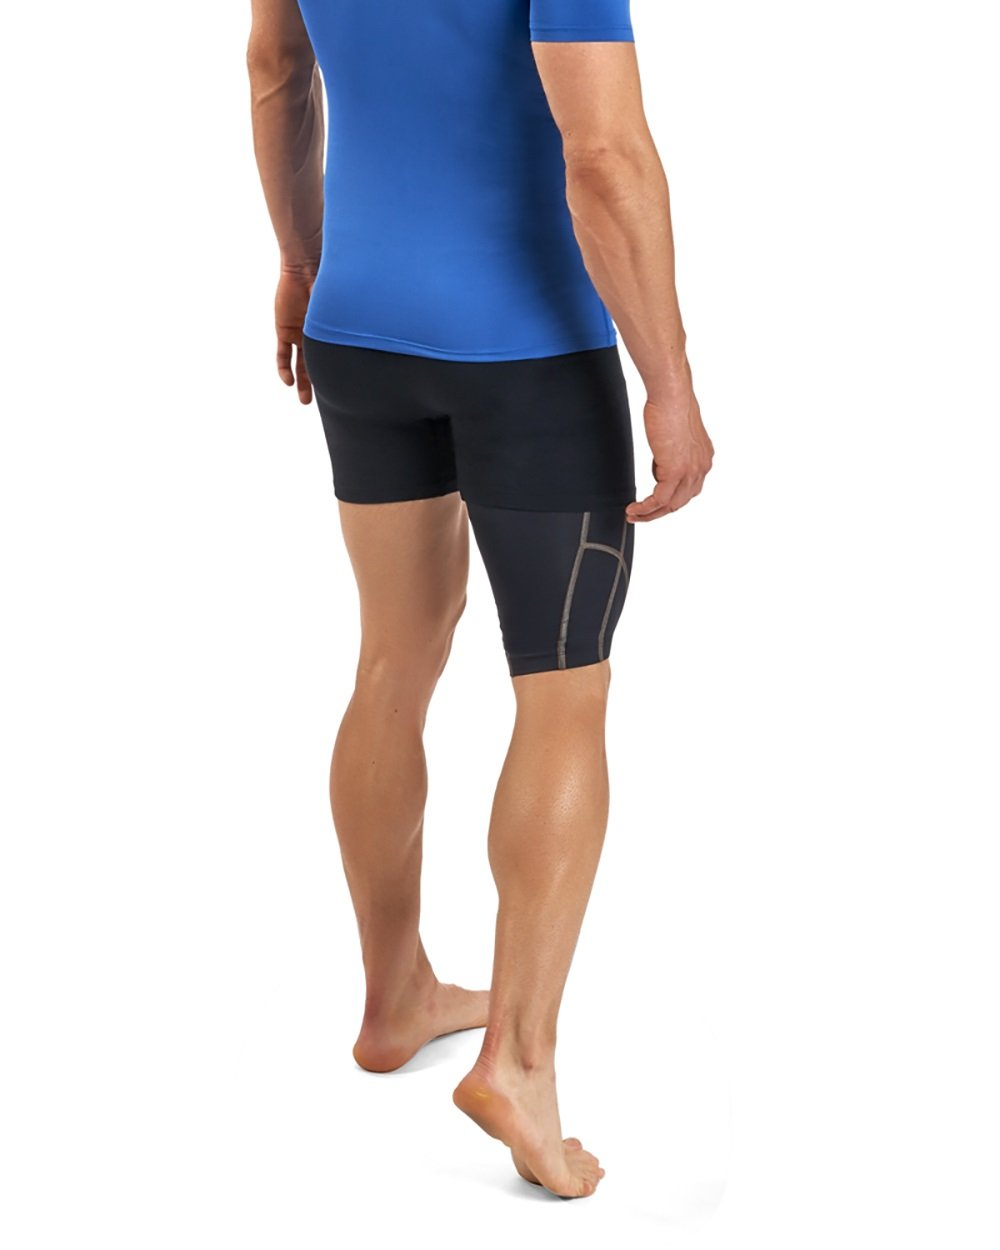 Tommie Copper Men's Performance Quad Sleeves 2.0, Small, Black by Tommie Copper (Image #3)